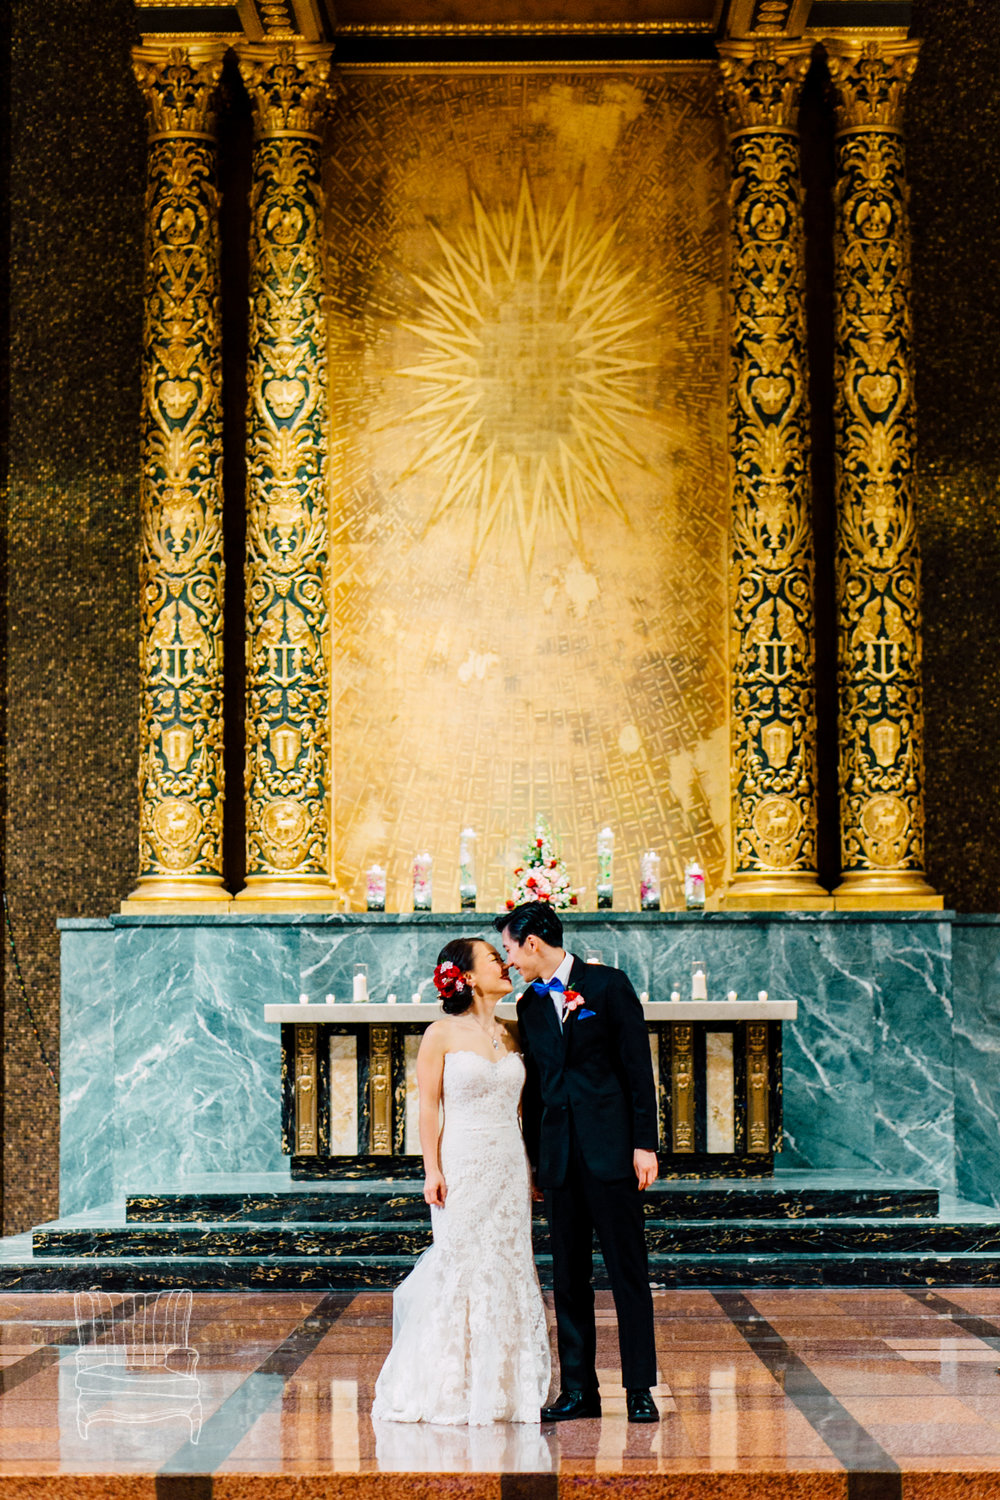 seattle-wedding-photographer-kartheryn-moran-yovithomas-1.JPG